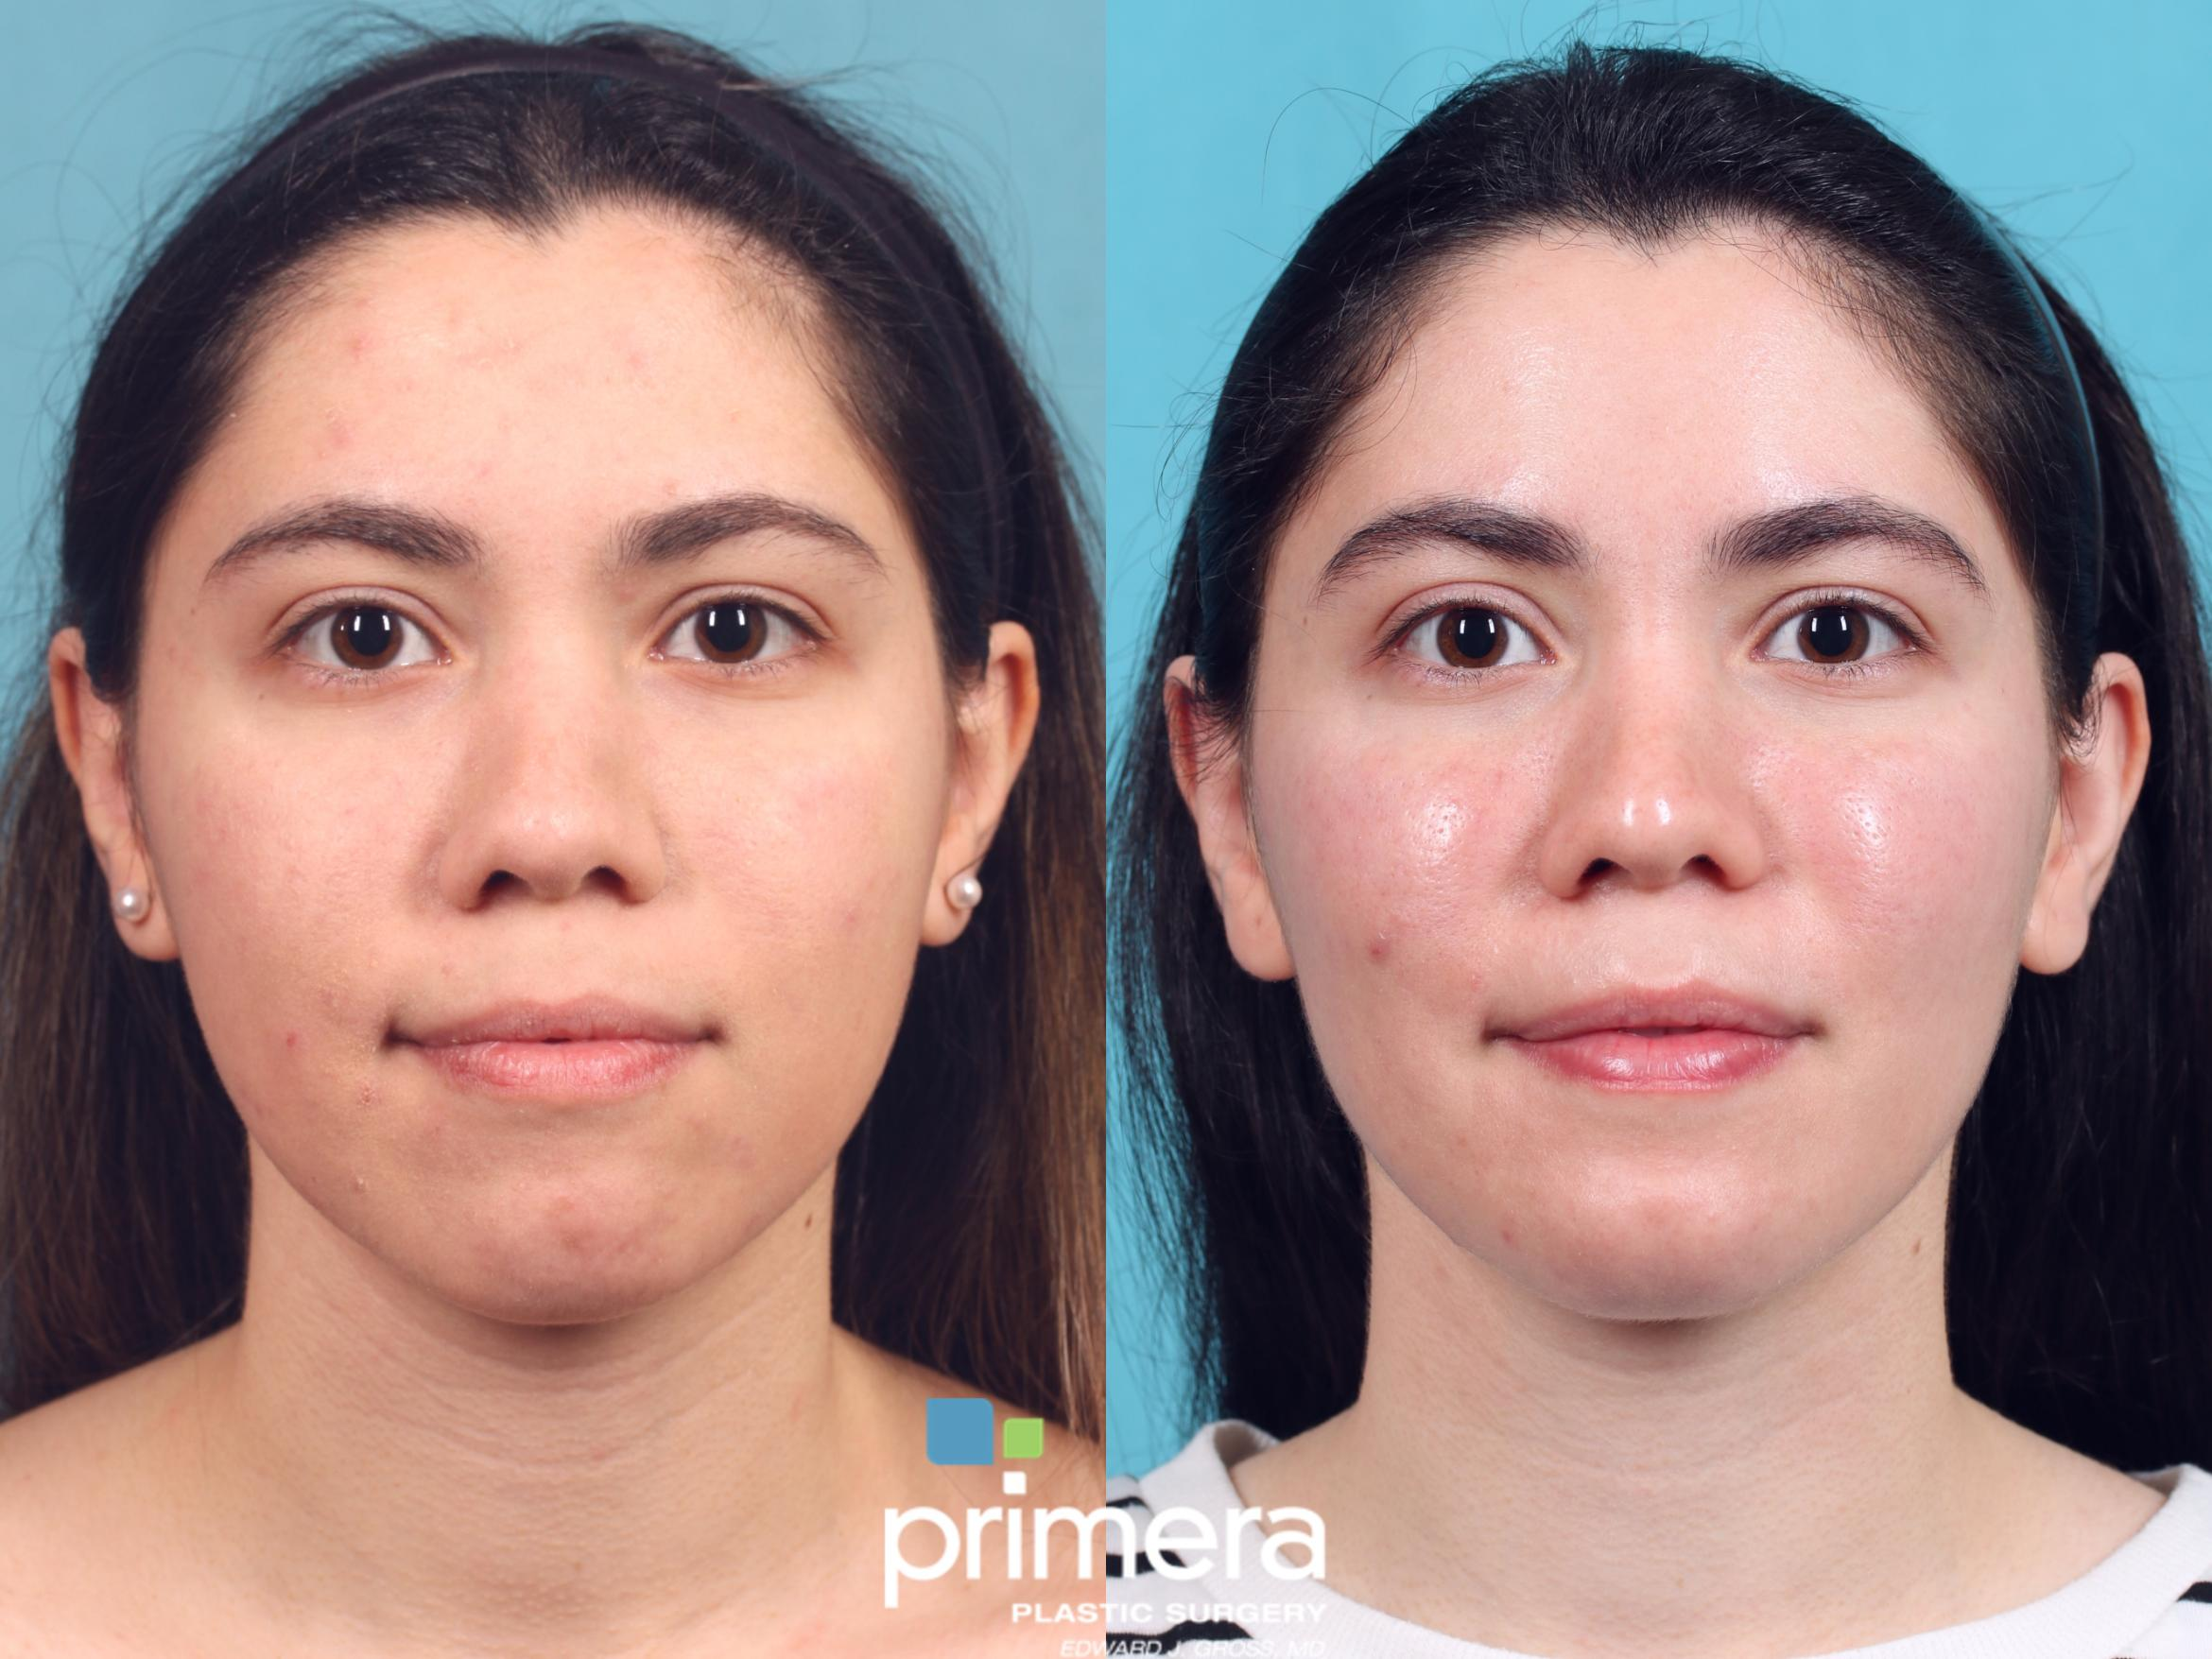 Buccal Fat Removal Before & After Photo | Orlando, Florida | Primera Plastic Surgery